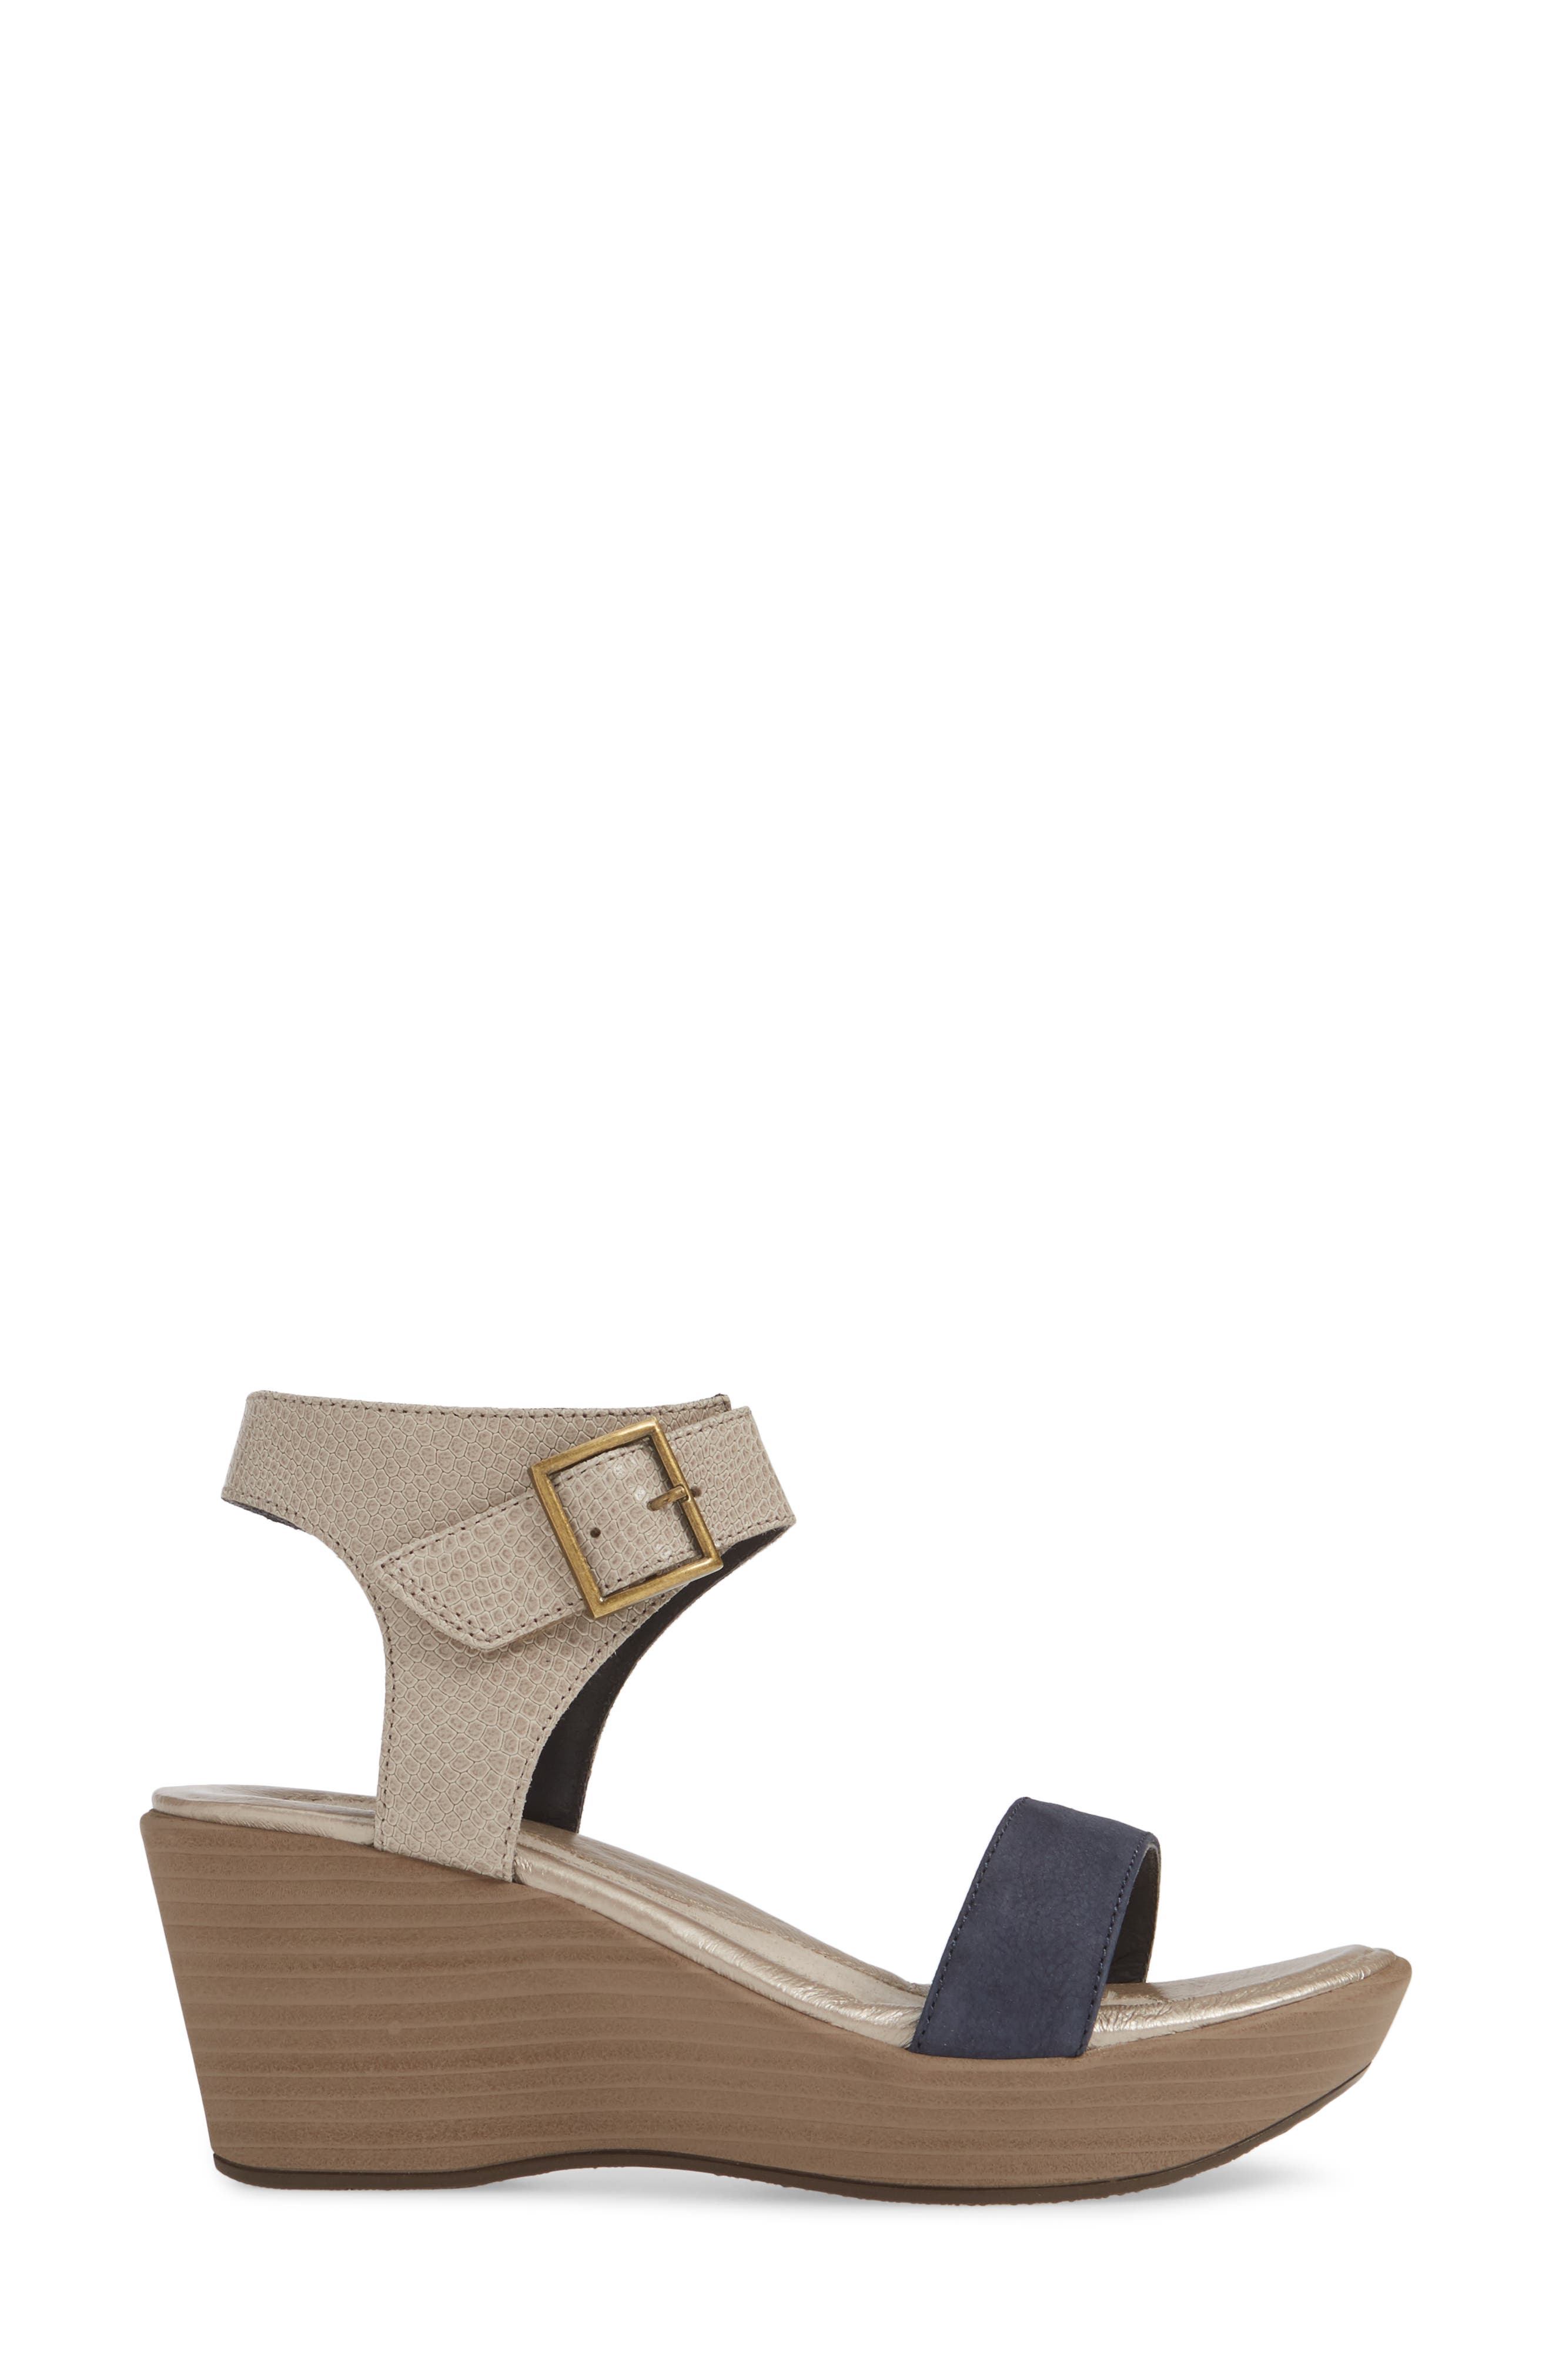 NAOT, Caprice Wedge Sandal, Alternate thumbnail 3, color, BEIGE LIZARD/ NAVY VELVET